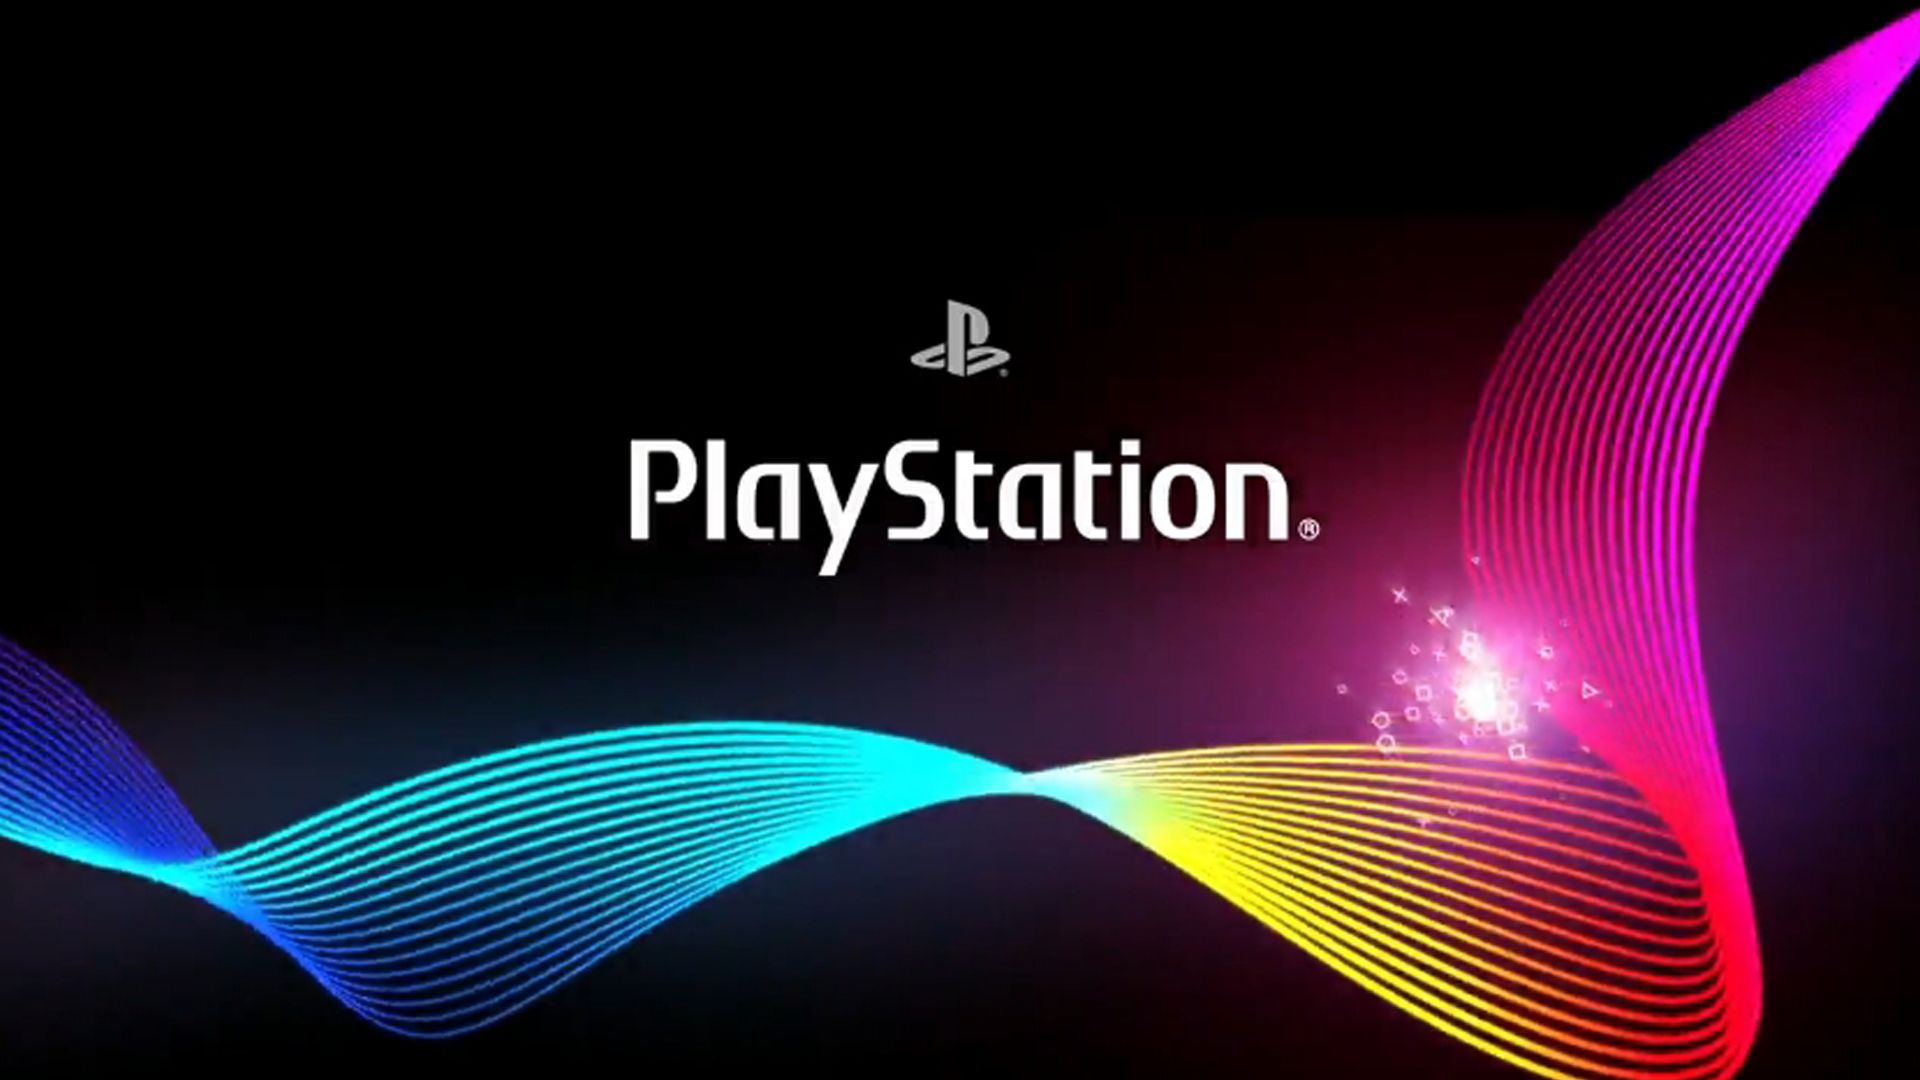 1920x1080 Ps3 Logo Wallpapers High Resolution – Epic Wallpaperz